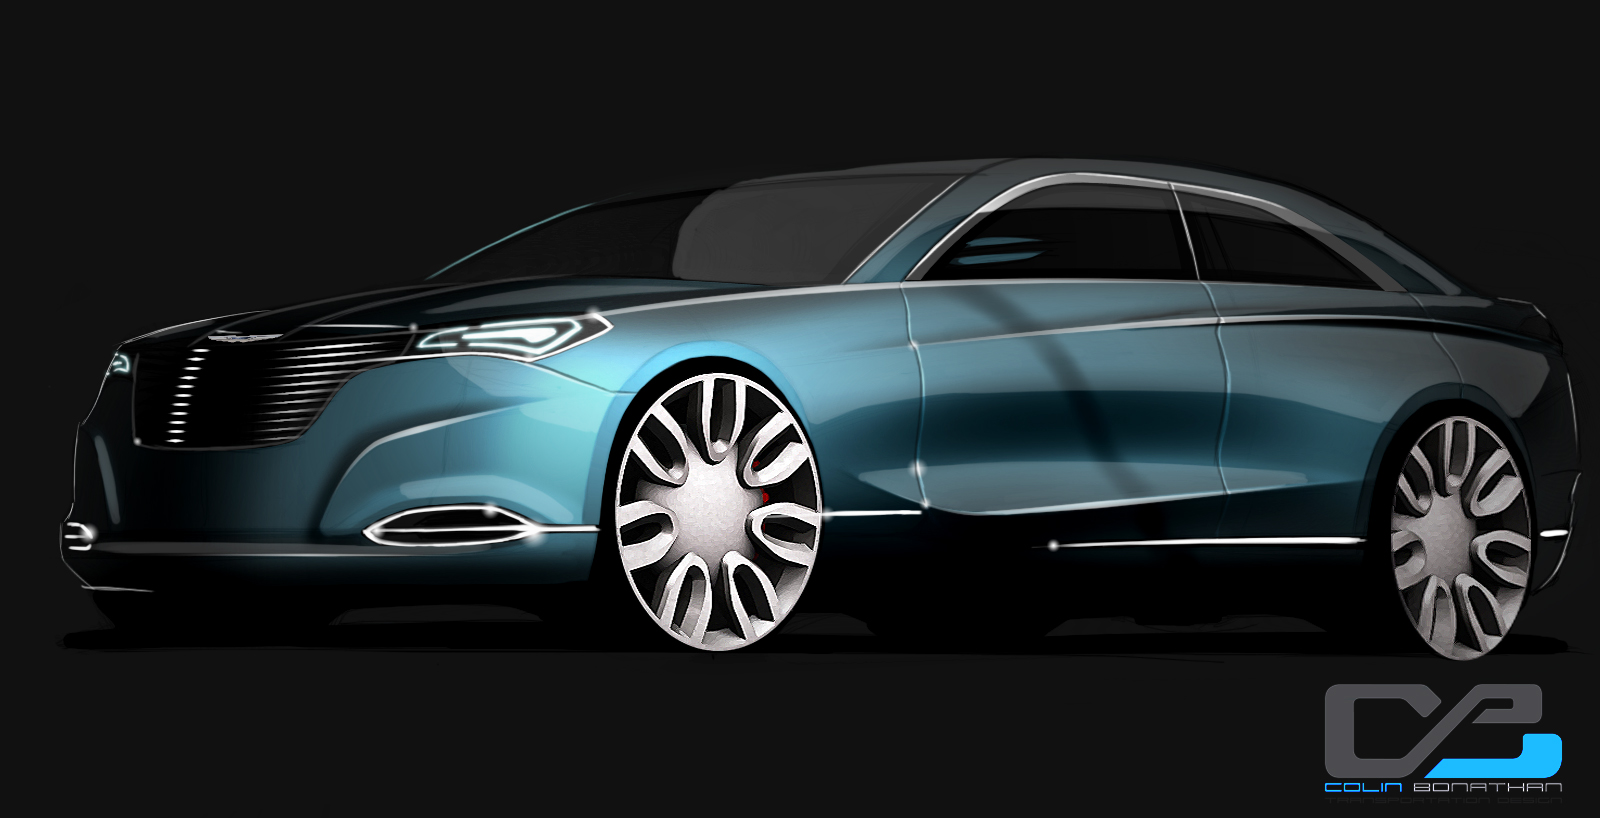 2014 Chrysler 200 Sedan Next generation 2014 Chrysler 200 Sedan Conceptualised